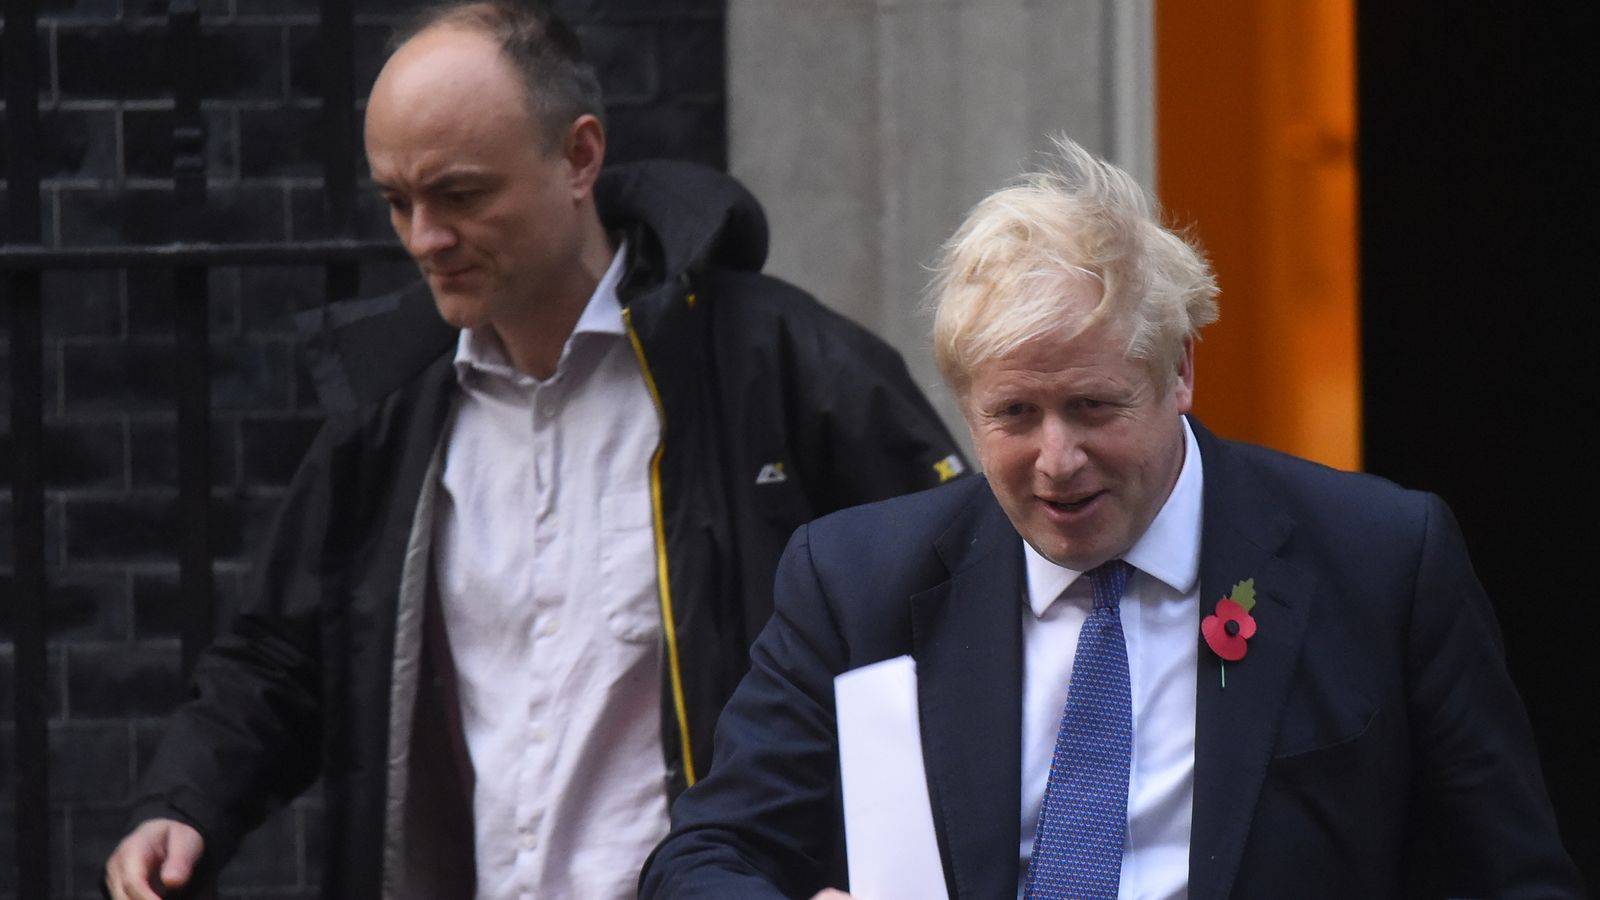 Scientific experts advising government criticise Boris Johnson after he backed Dominic Cummings